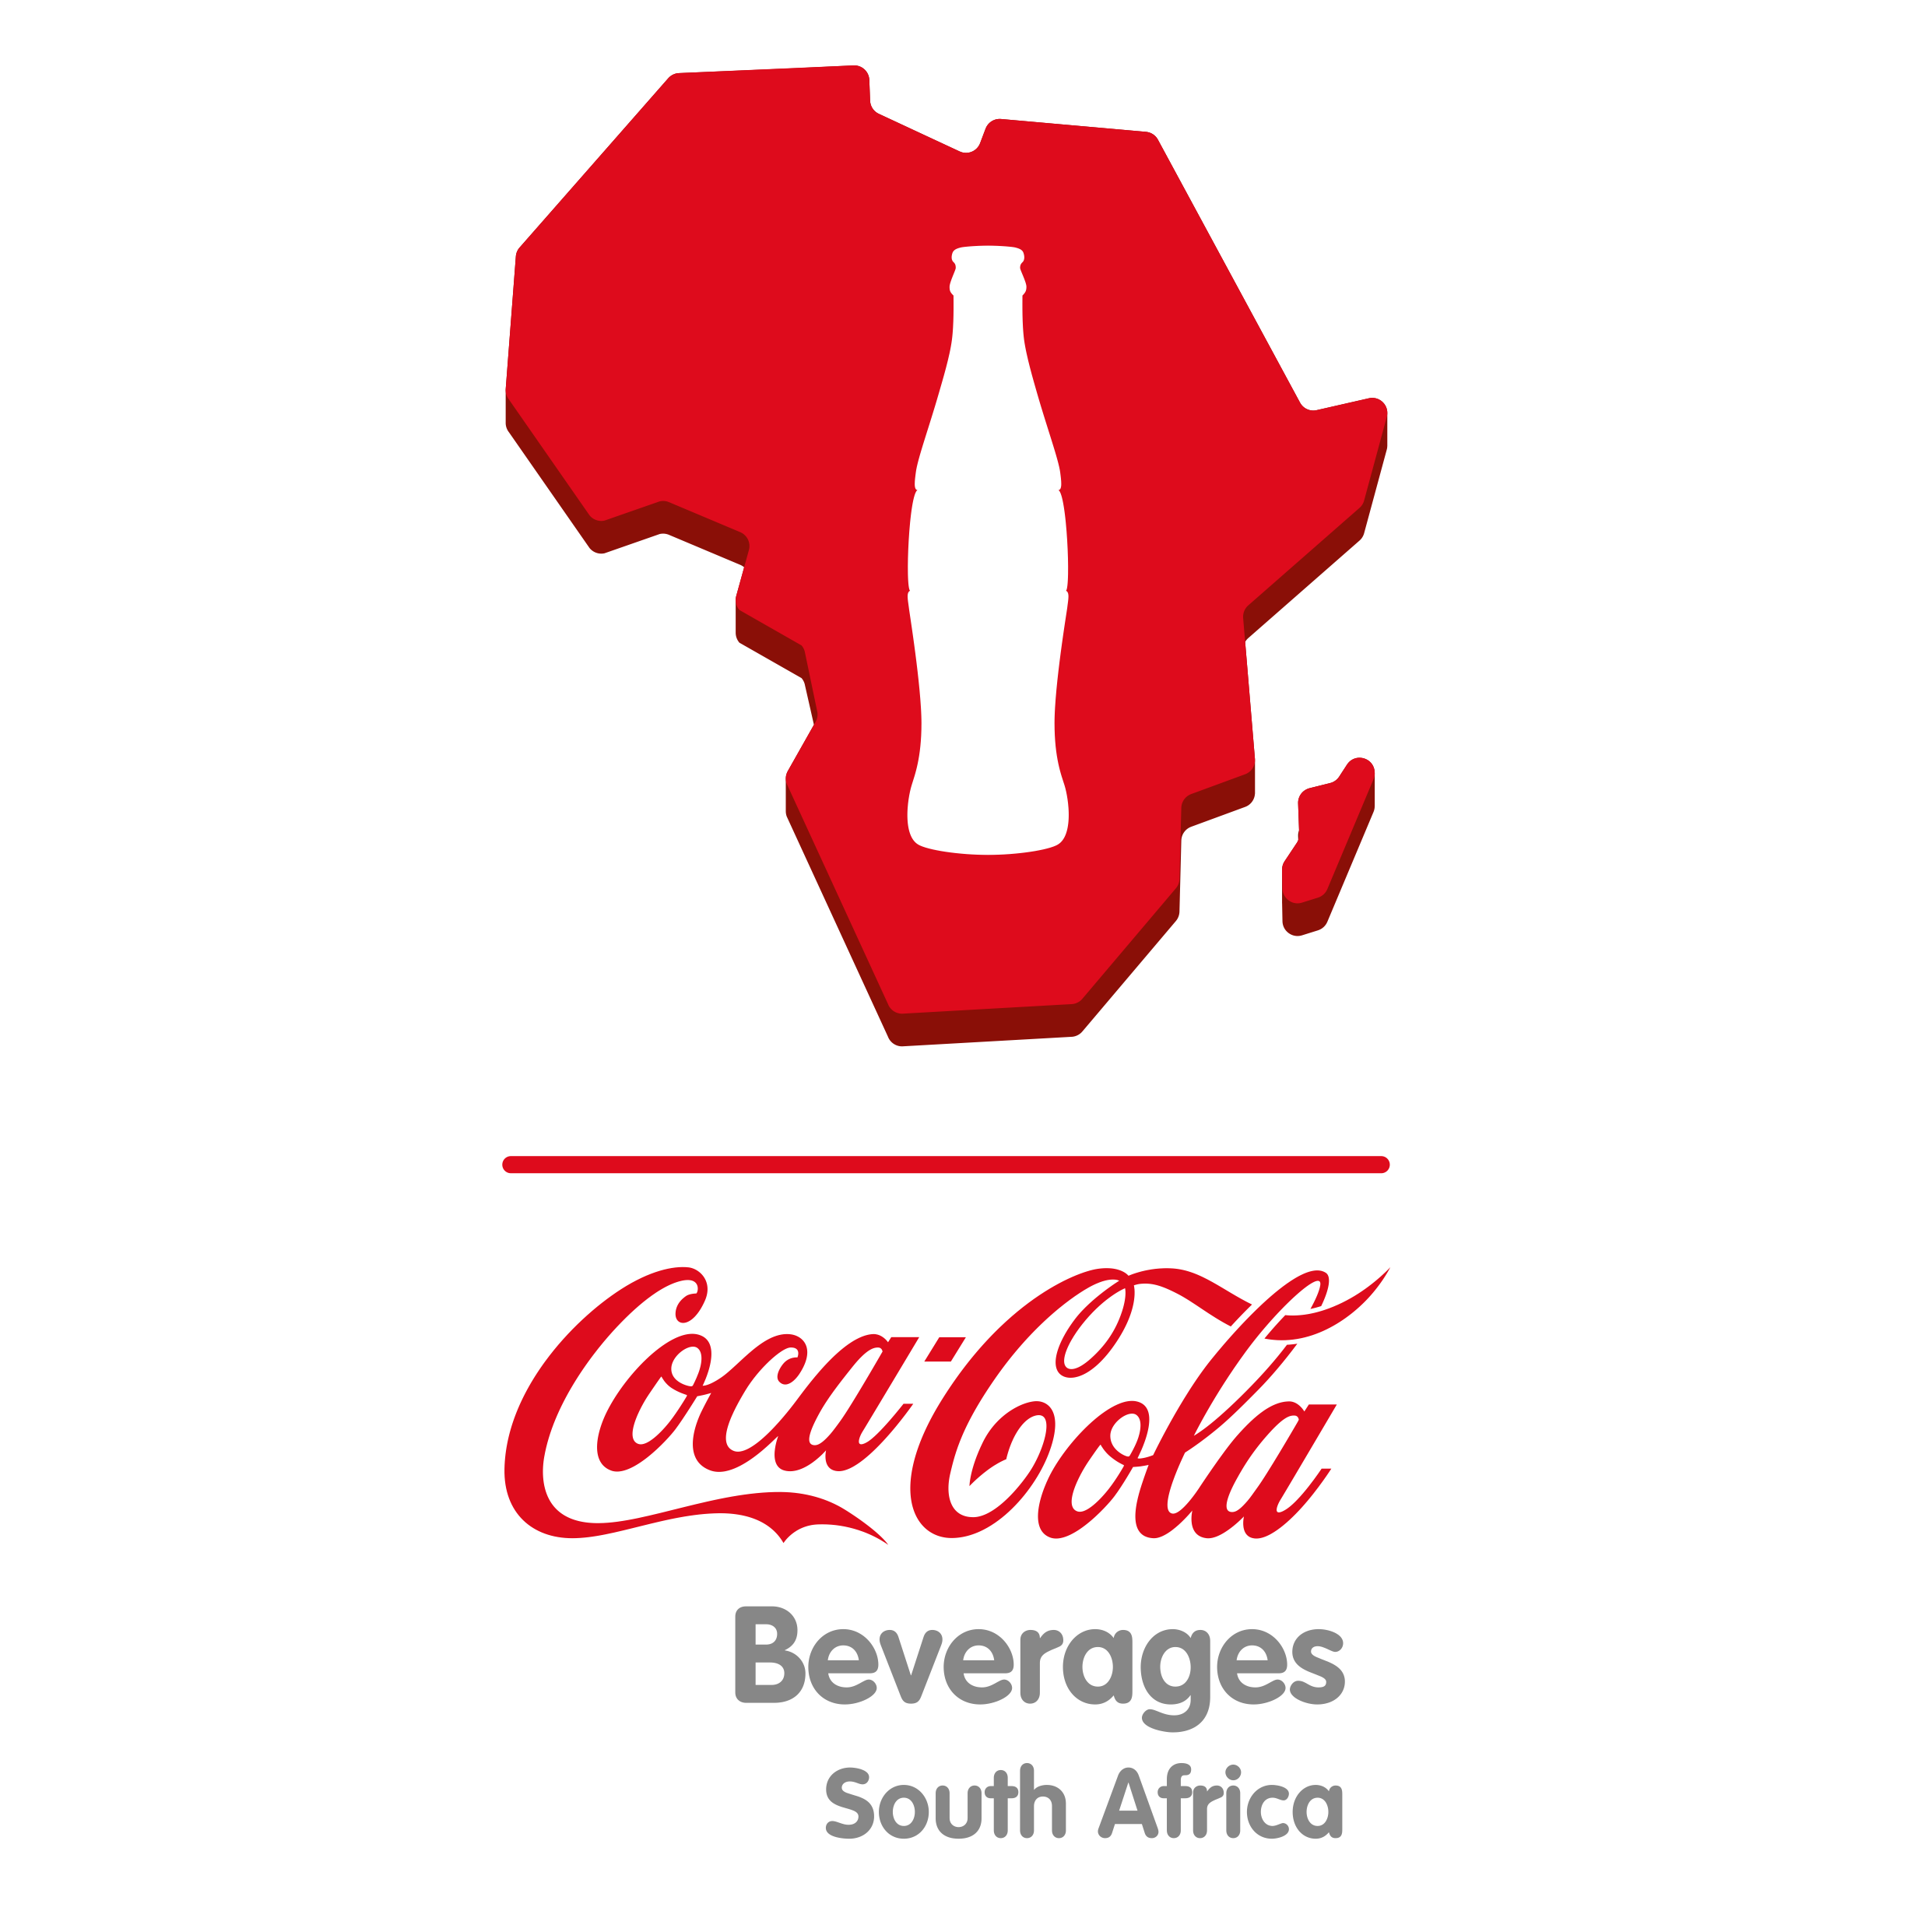 Coca-Cola Beverages South Africa Engineering Management Student 2019 for young South Africans